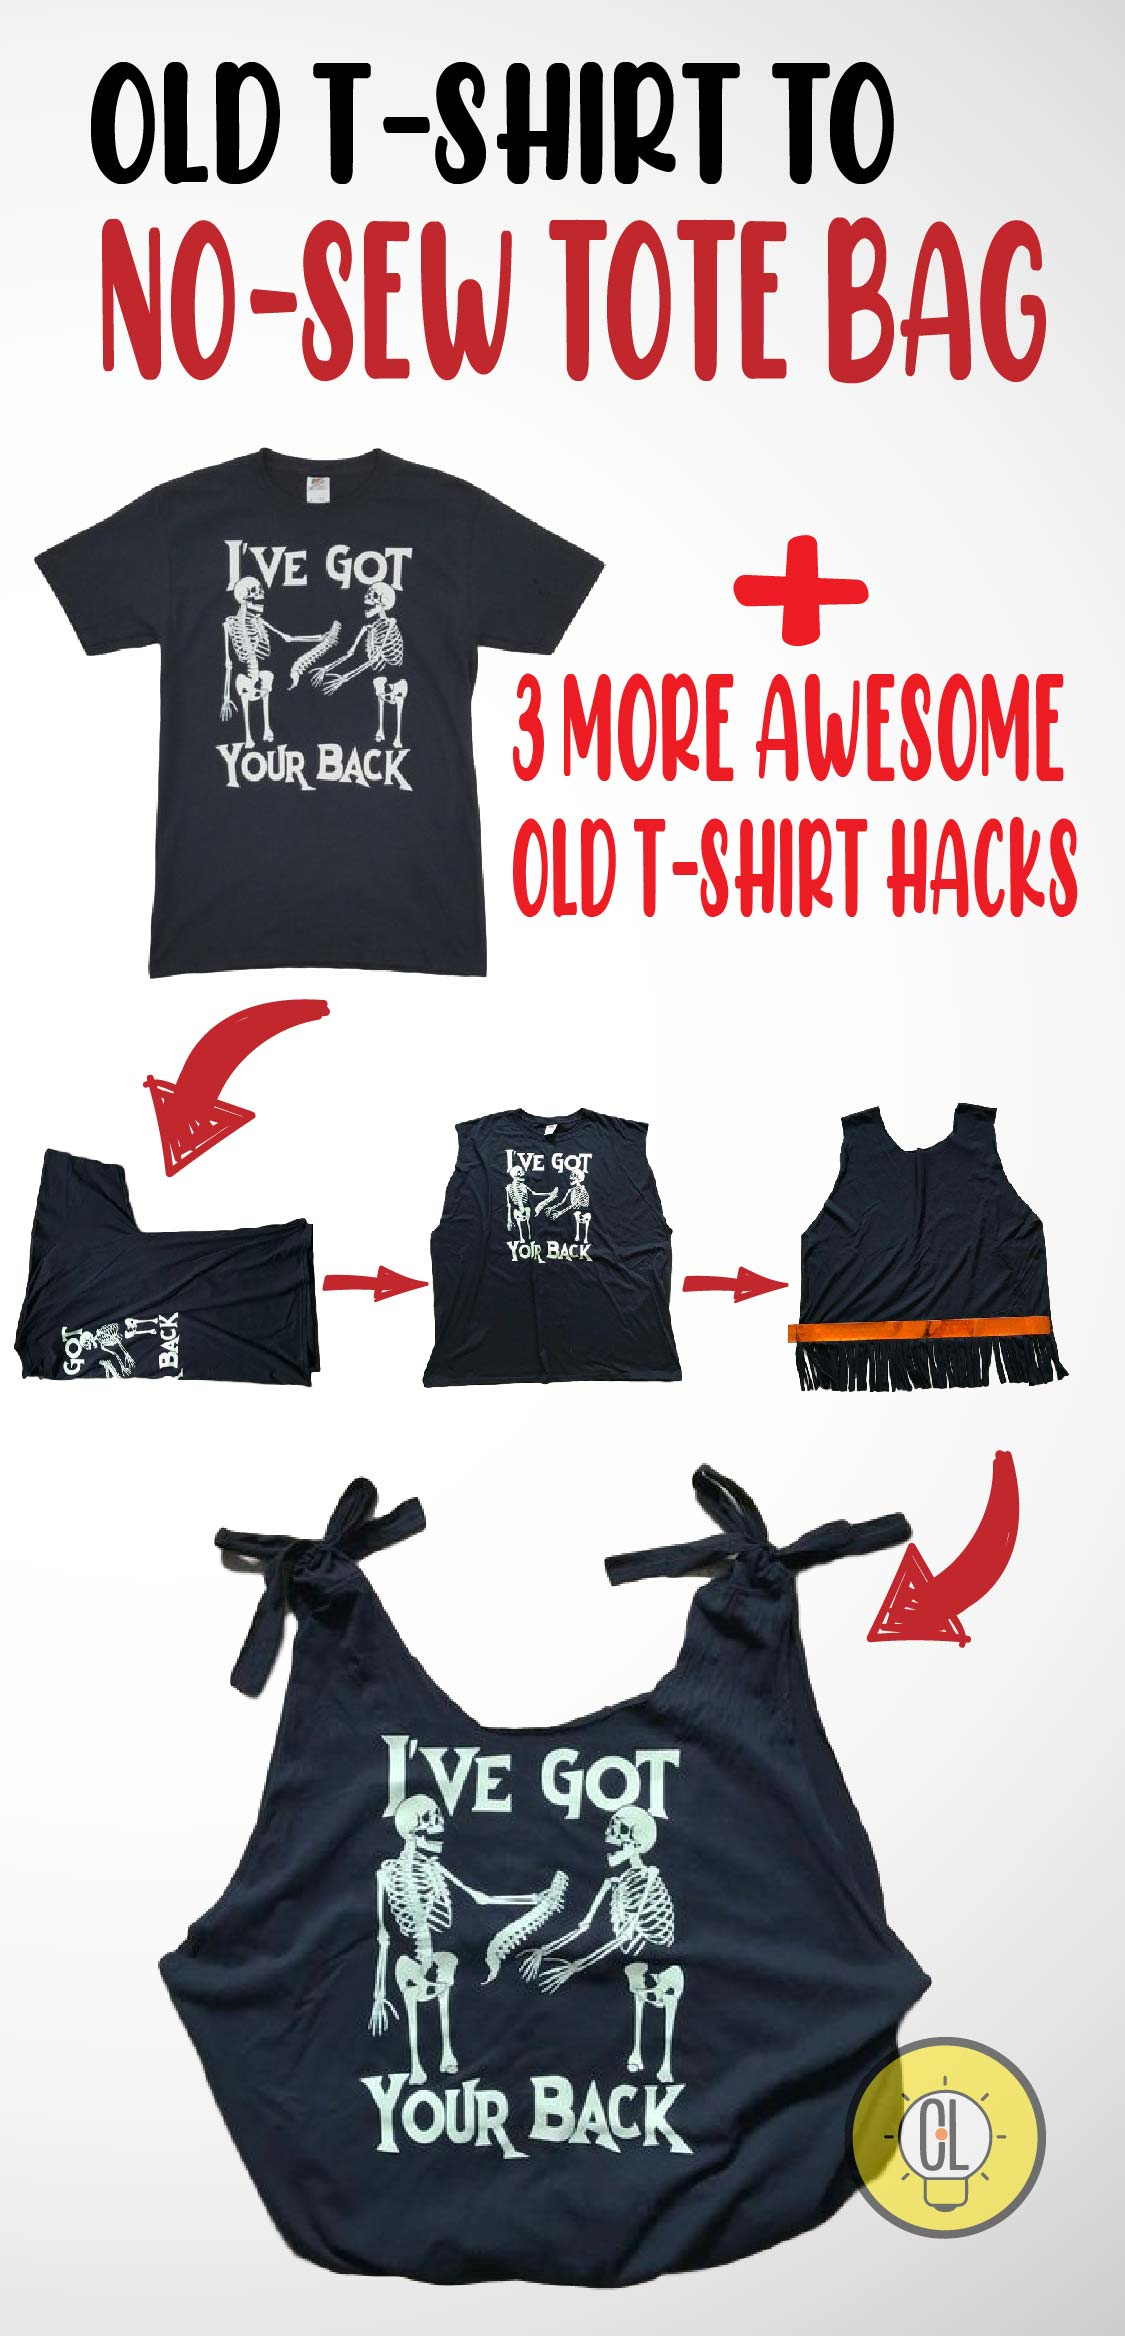 4 ways to repurpose your old t-shrit hacks